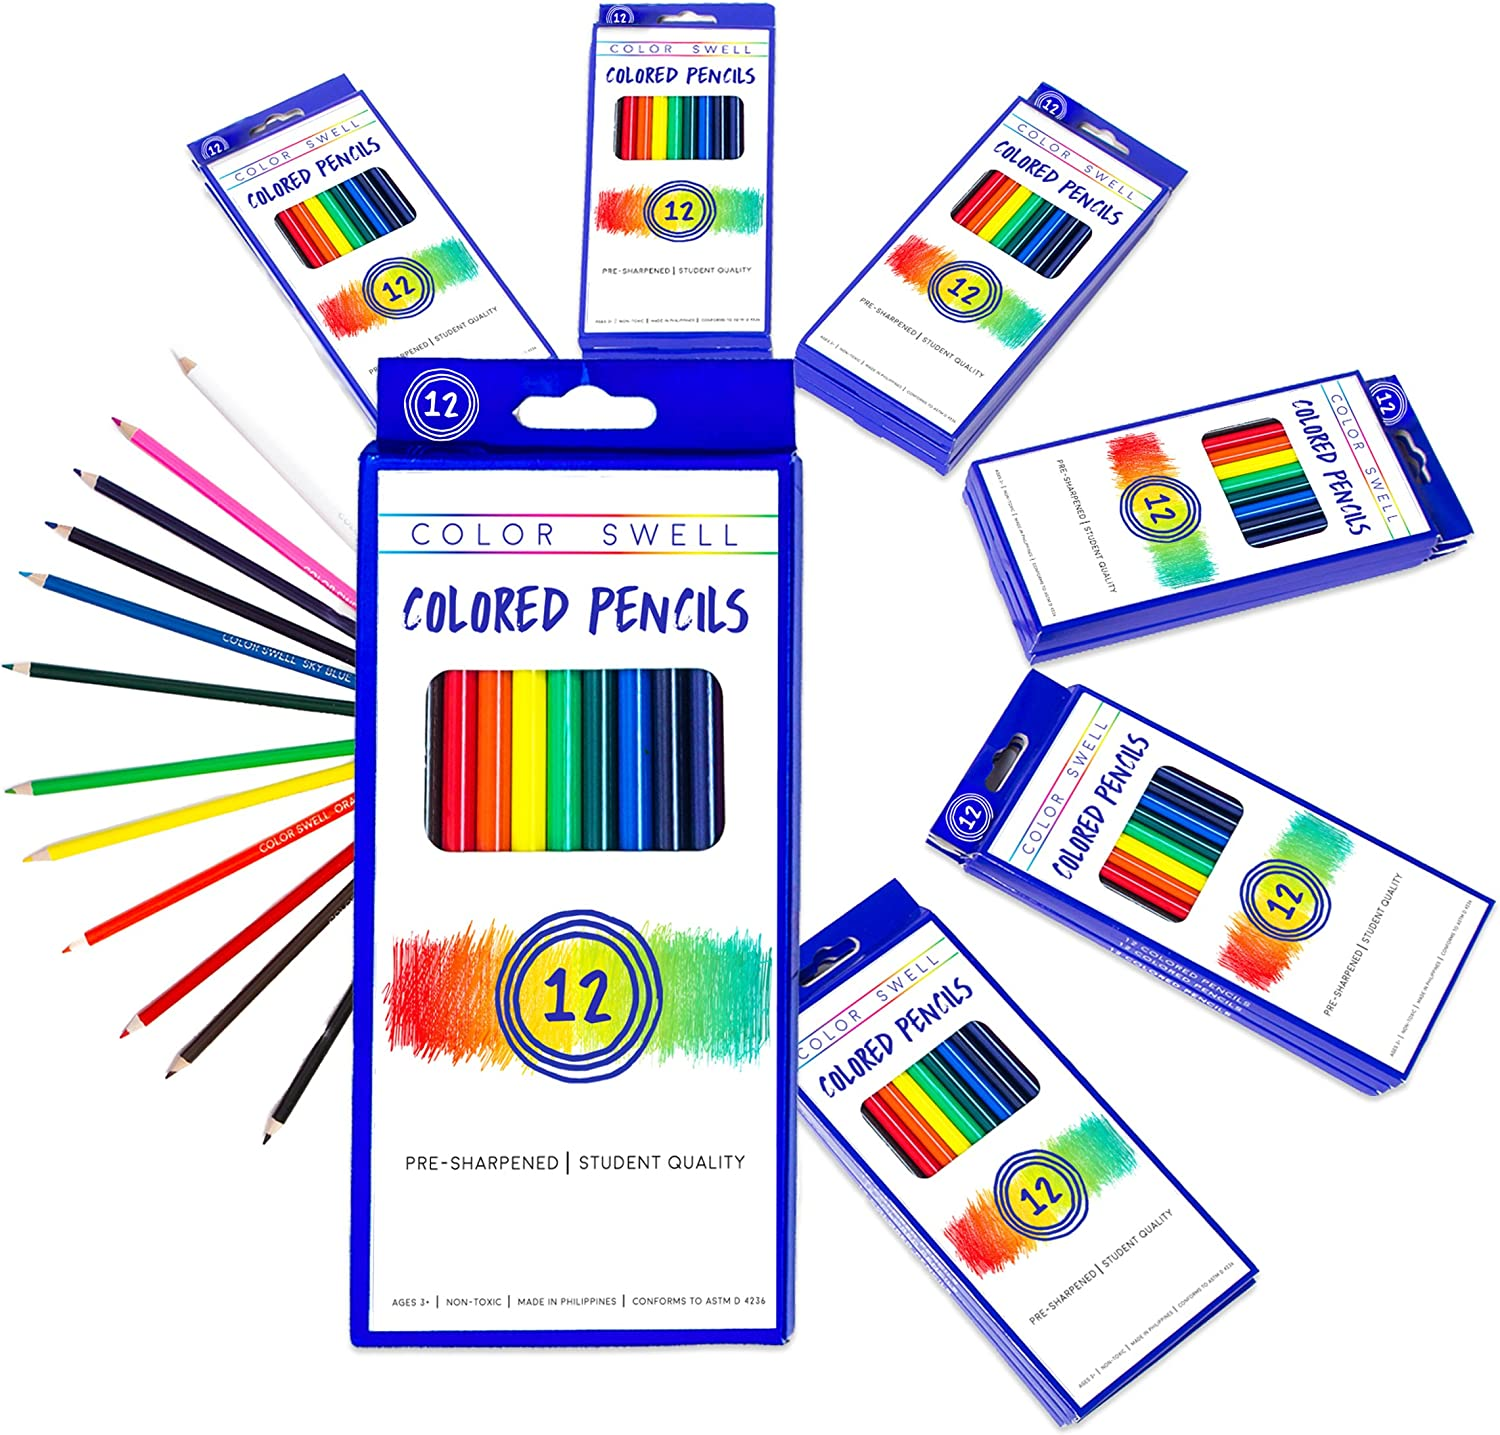 Color Swell Colored Pencils Bulk Pack 30 Sets 12 Count Assorted Vibrant Pre-Sharpened Colors 360 Total Perfect for Kids, Teachers and Classrooms